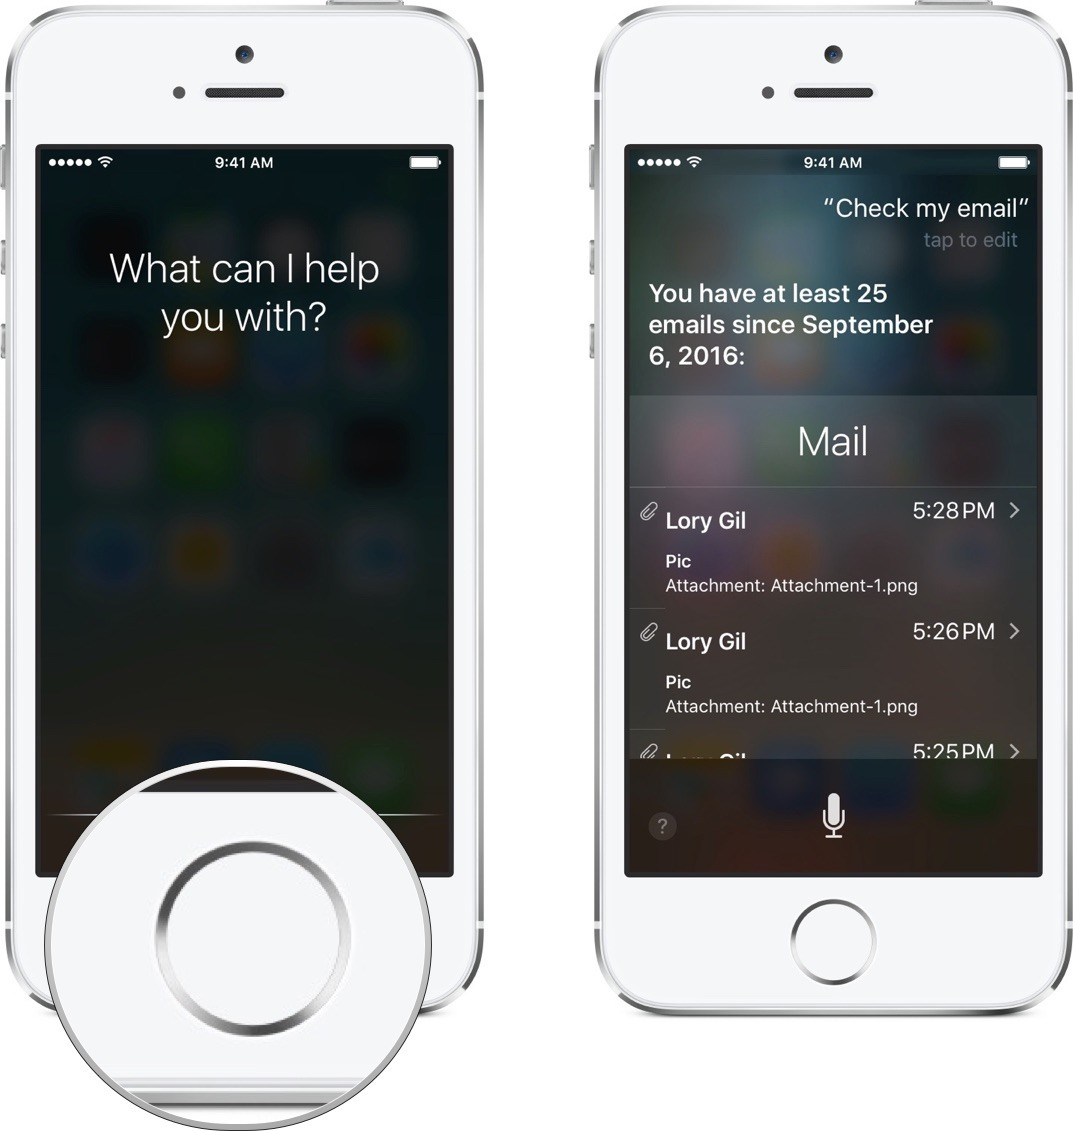 Ask Siri t check your email